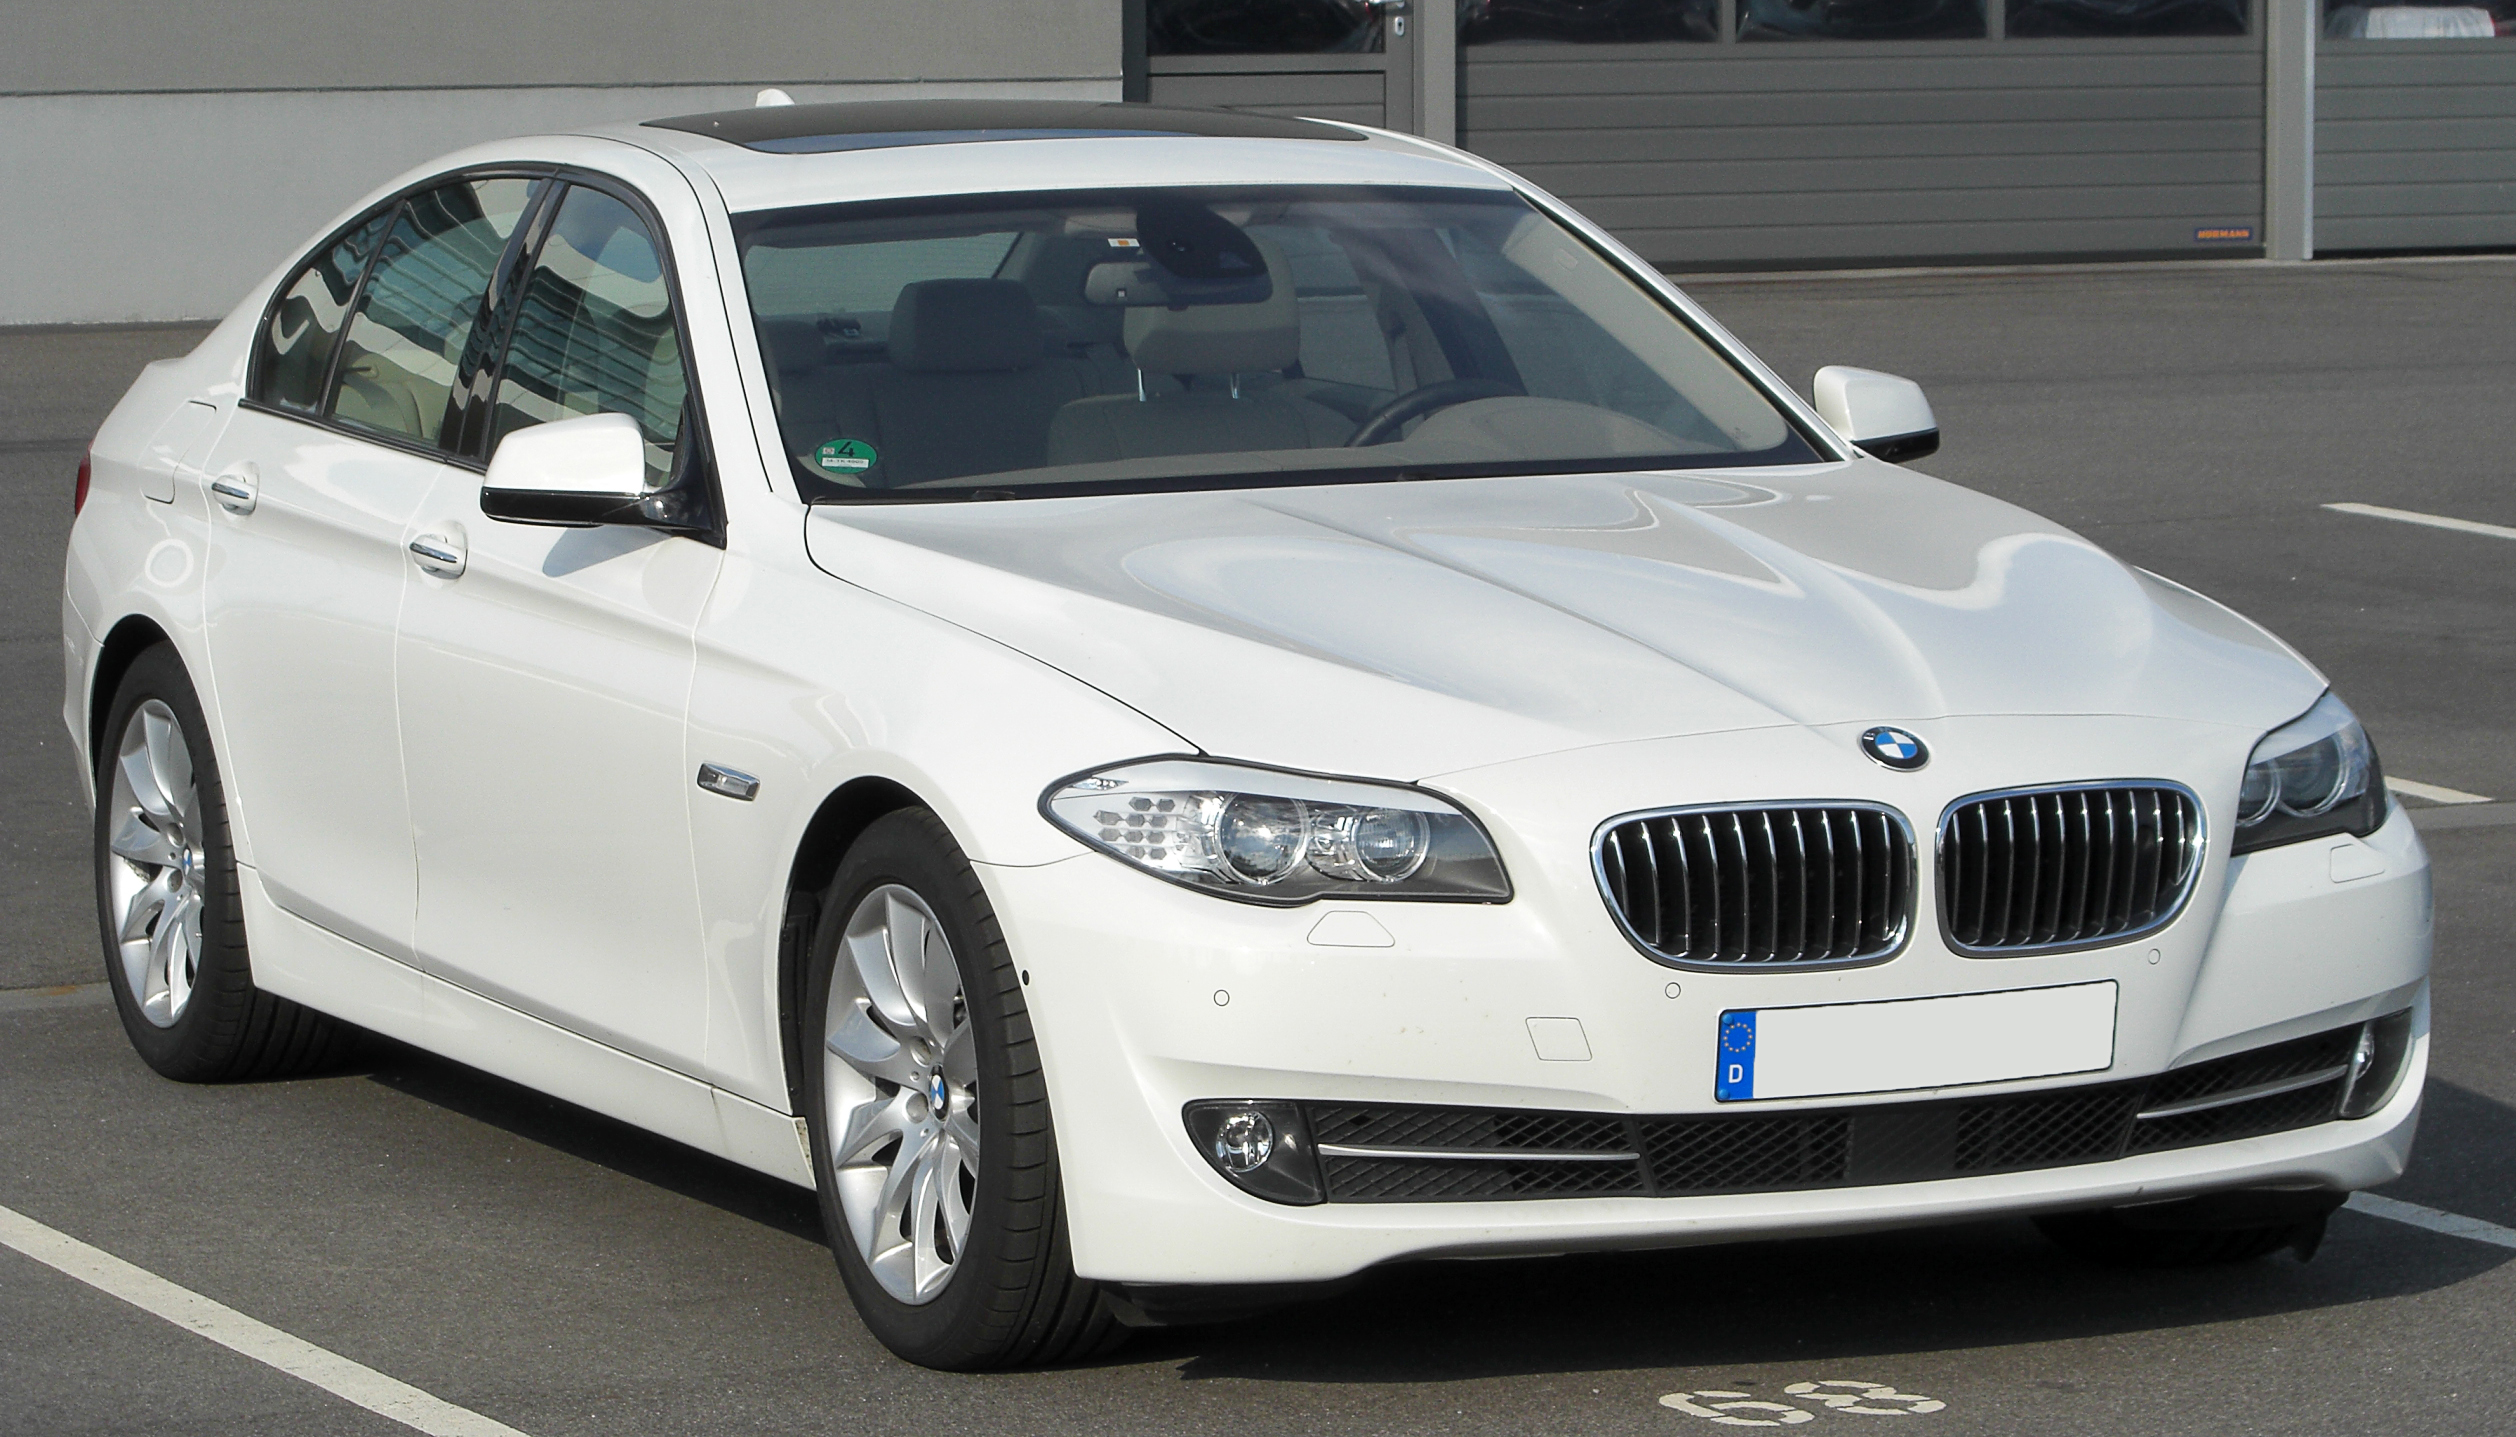 file bmw 530d f10 front 1 wikimedia commons. Black Bedroom Furniture Sets. Home Design Ideas